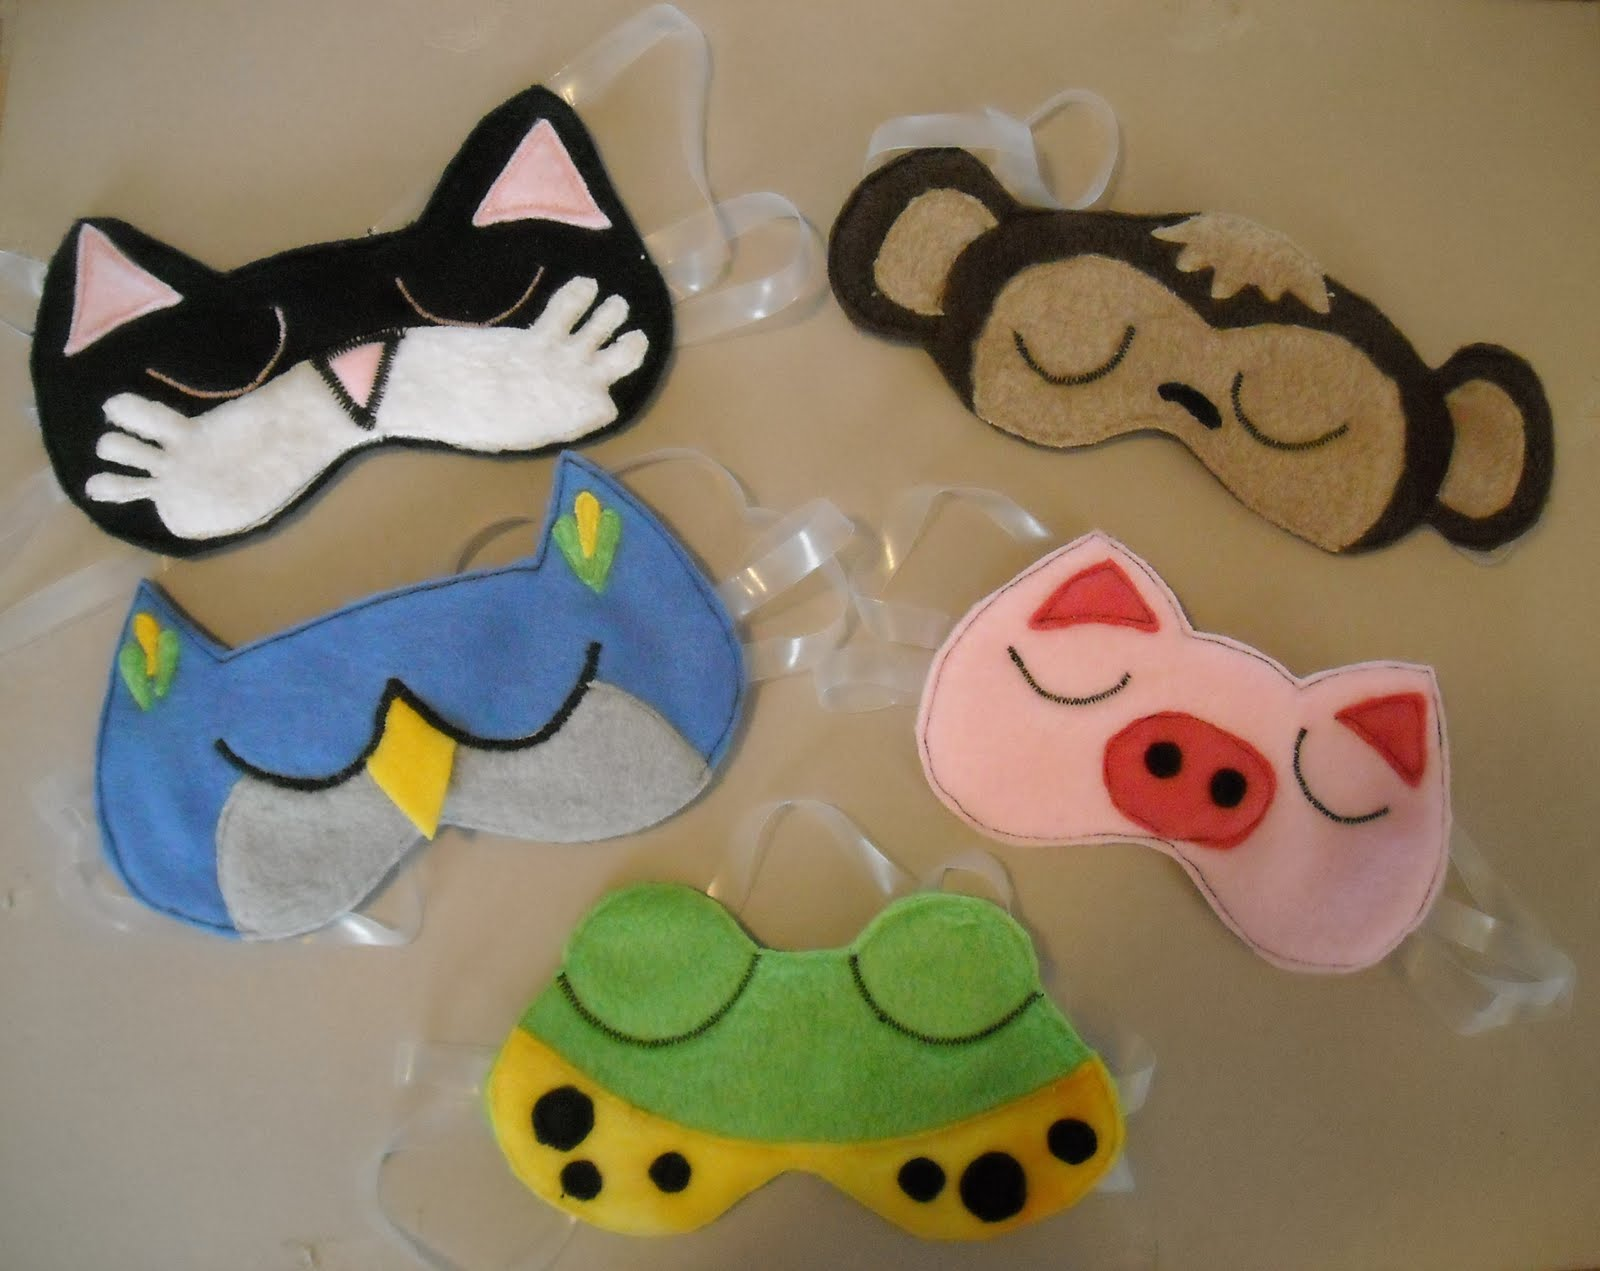 Find great deals on eBay for kids sleep mask and kids sleep eye mask. Shop with confidence.